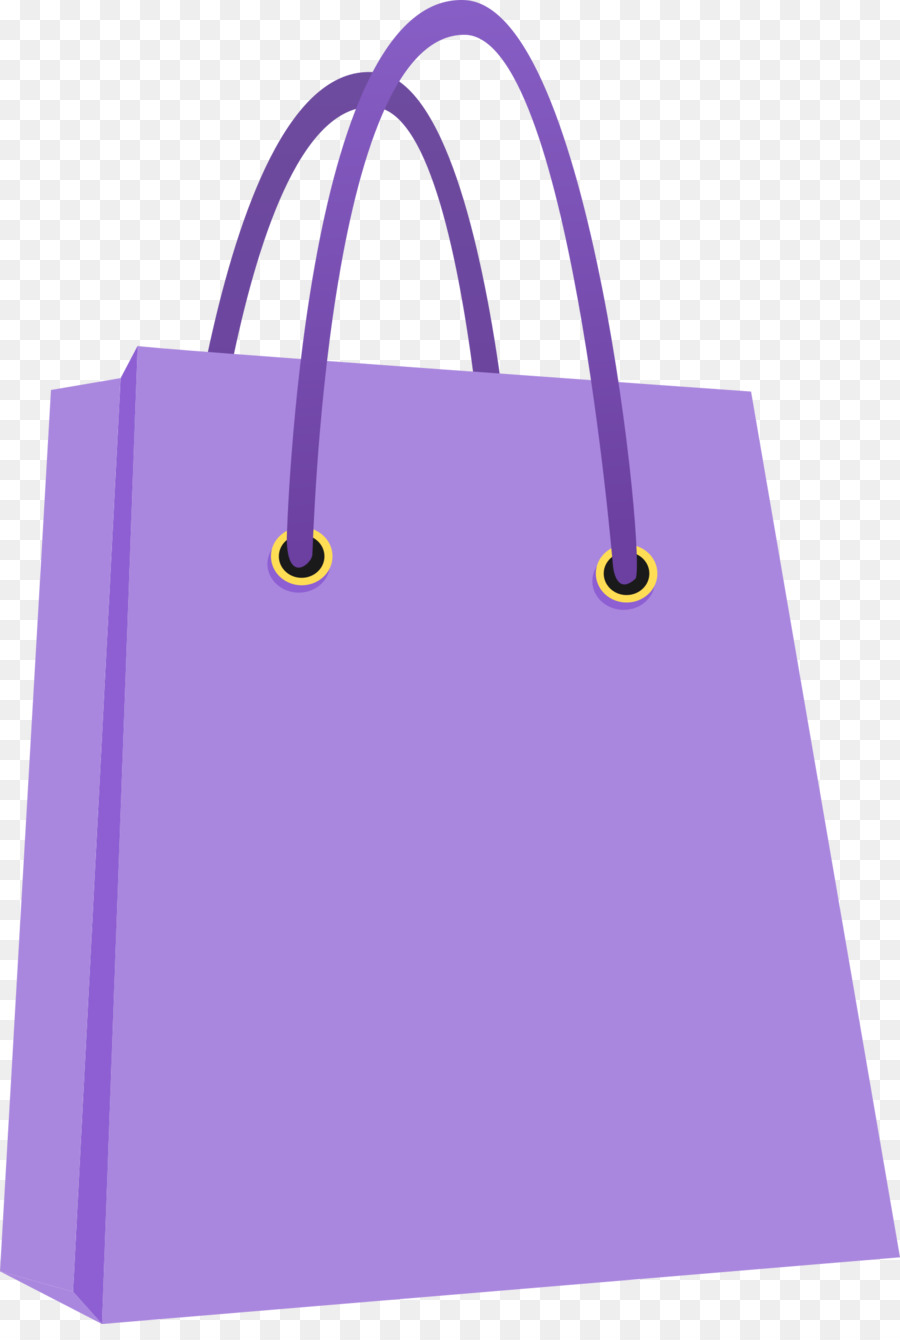 svg black and white download Shopping rectangle transparent clip. Bags clipart purple bag.